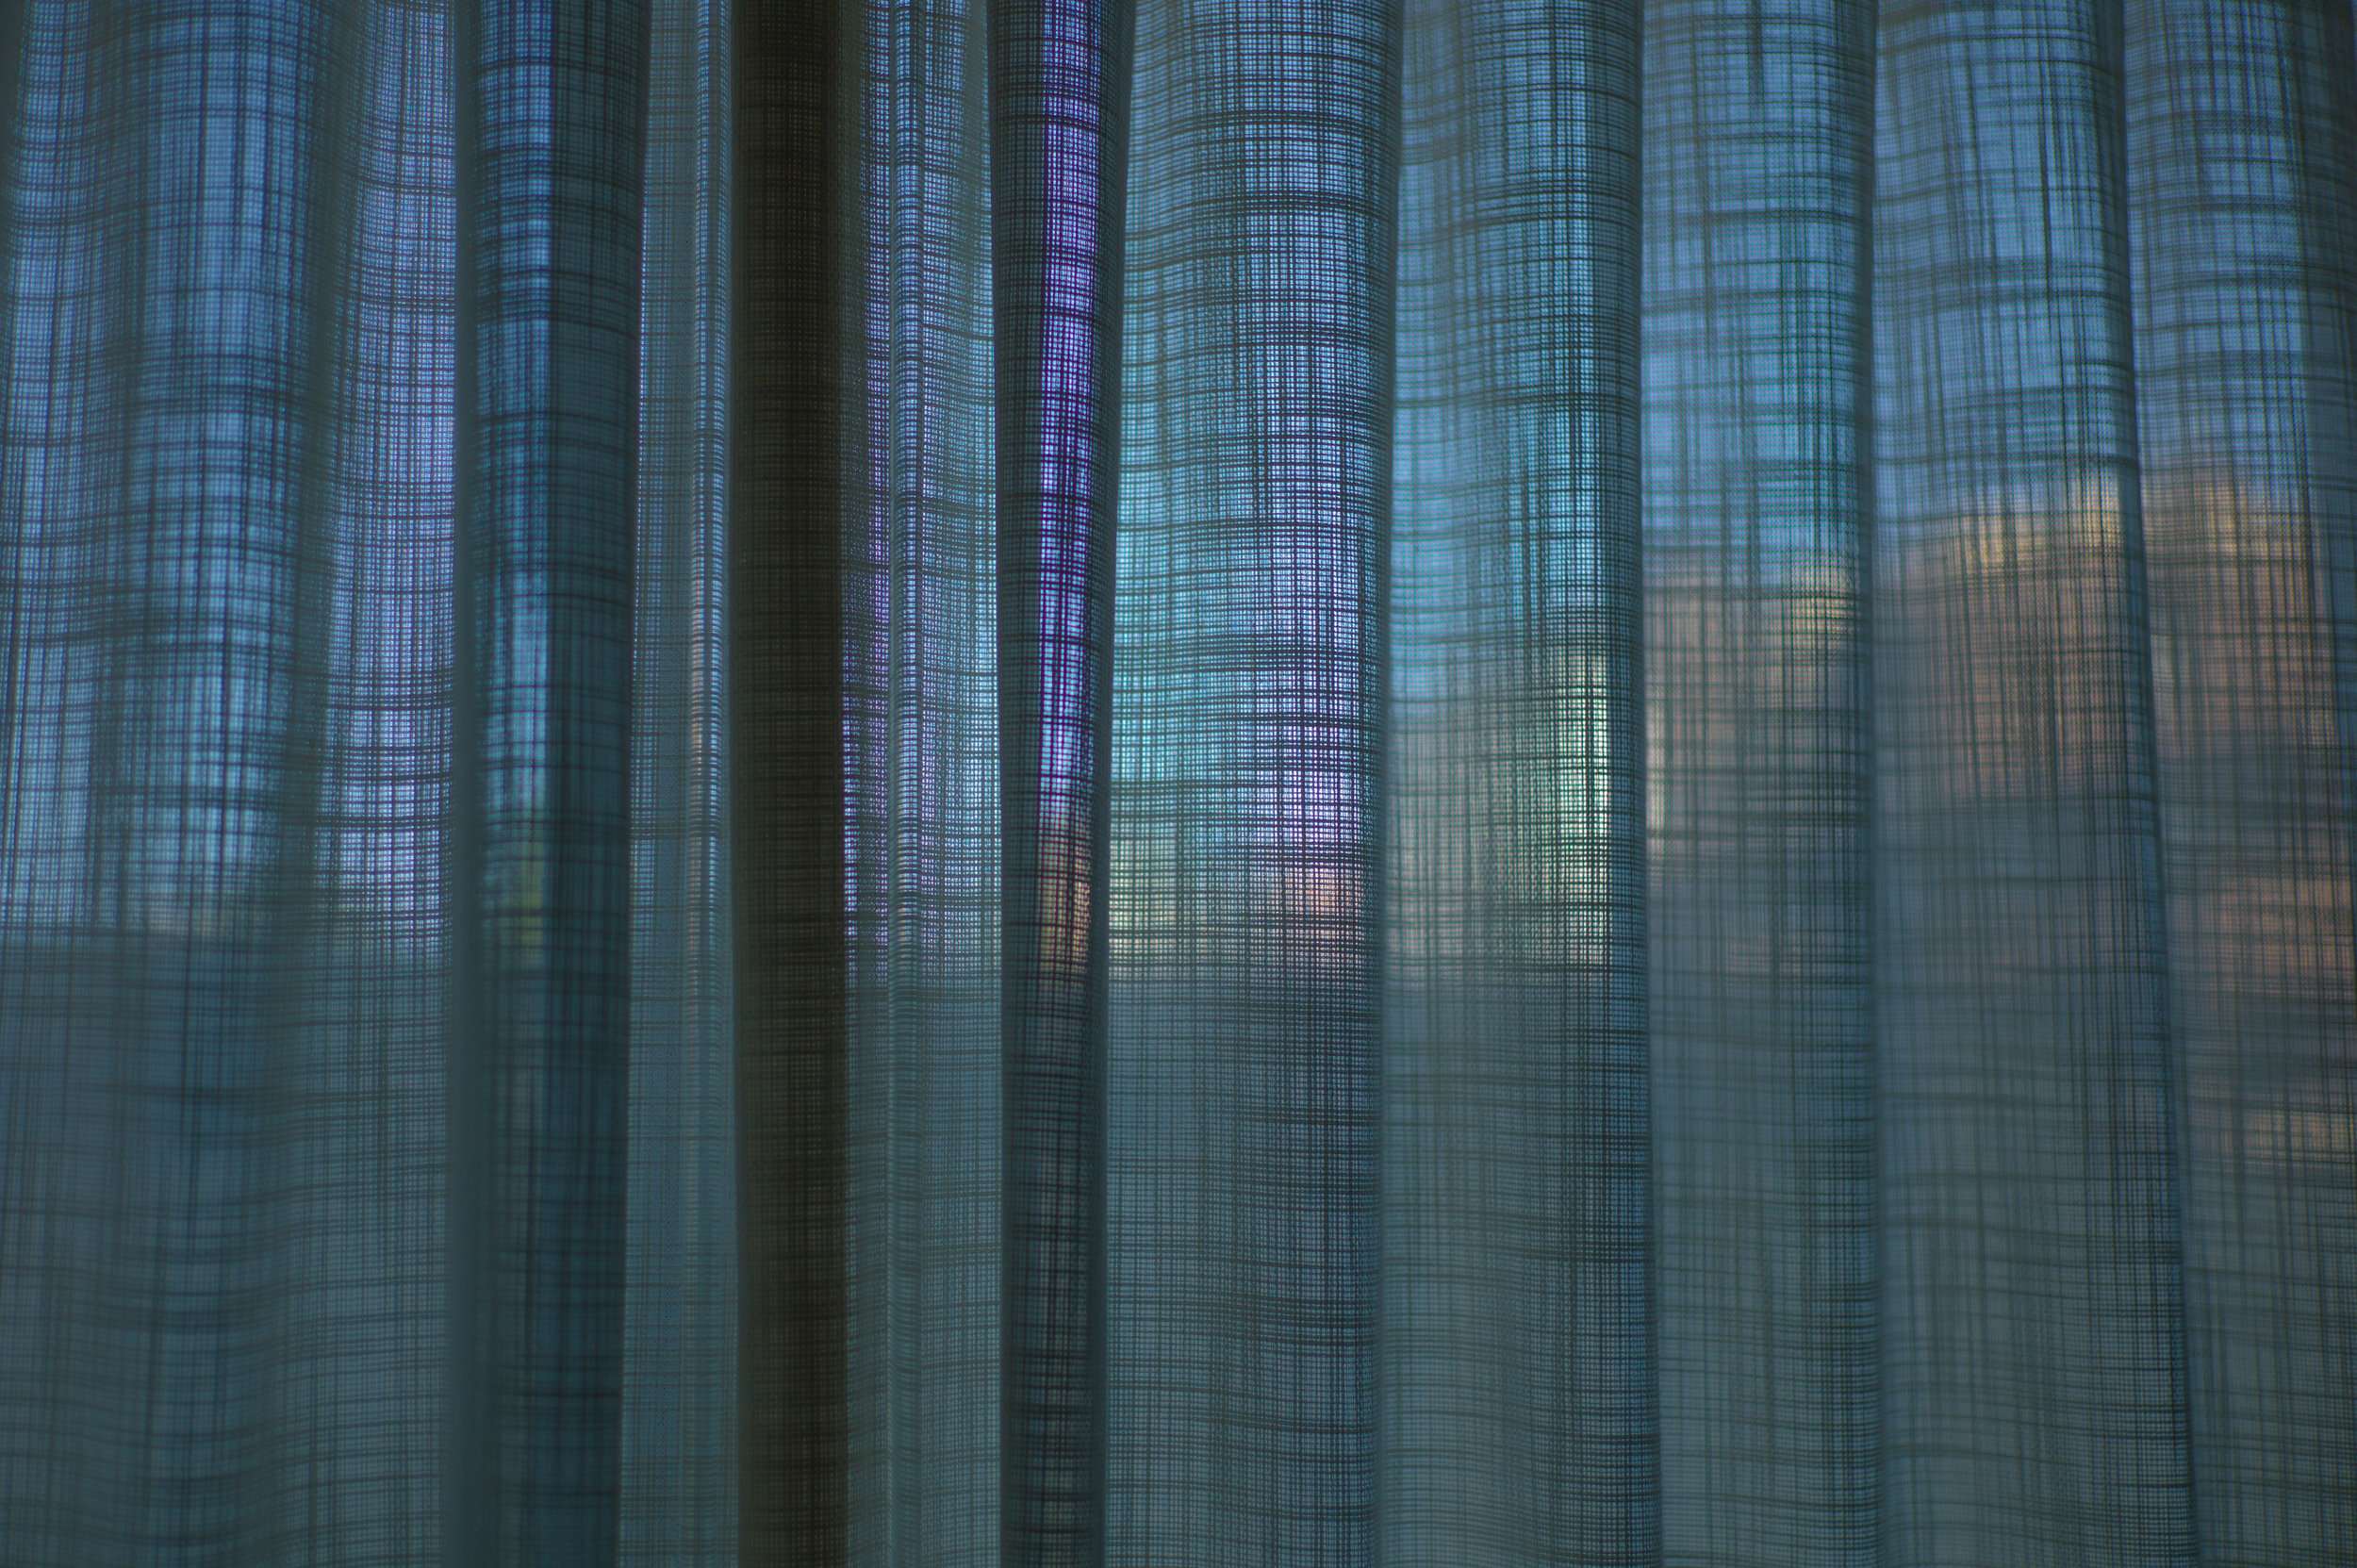 Cityscape through Fabric, 1